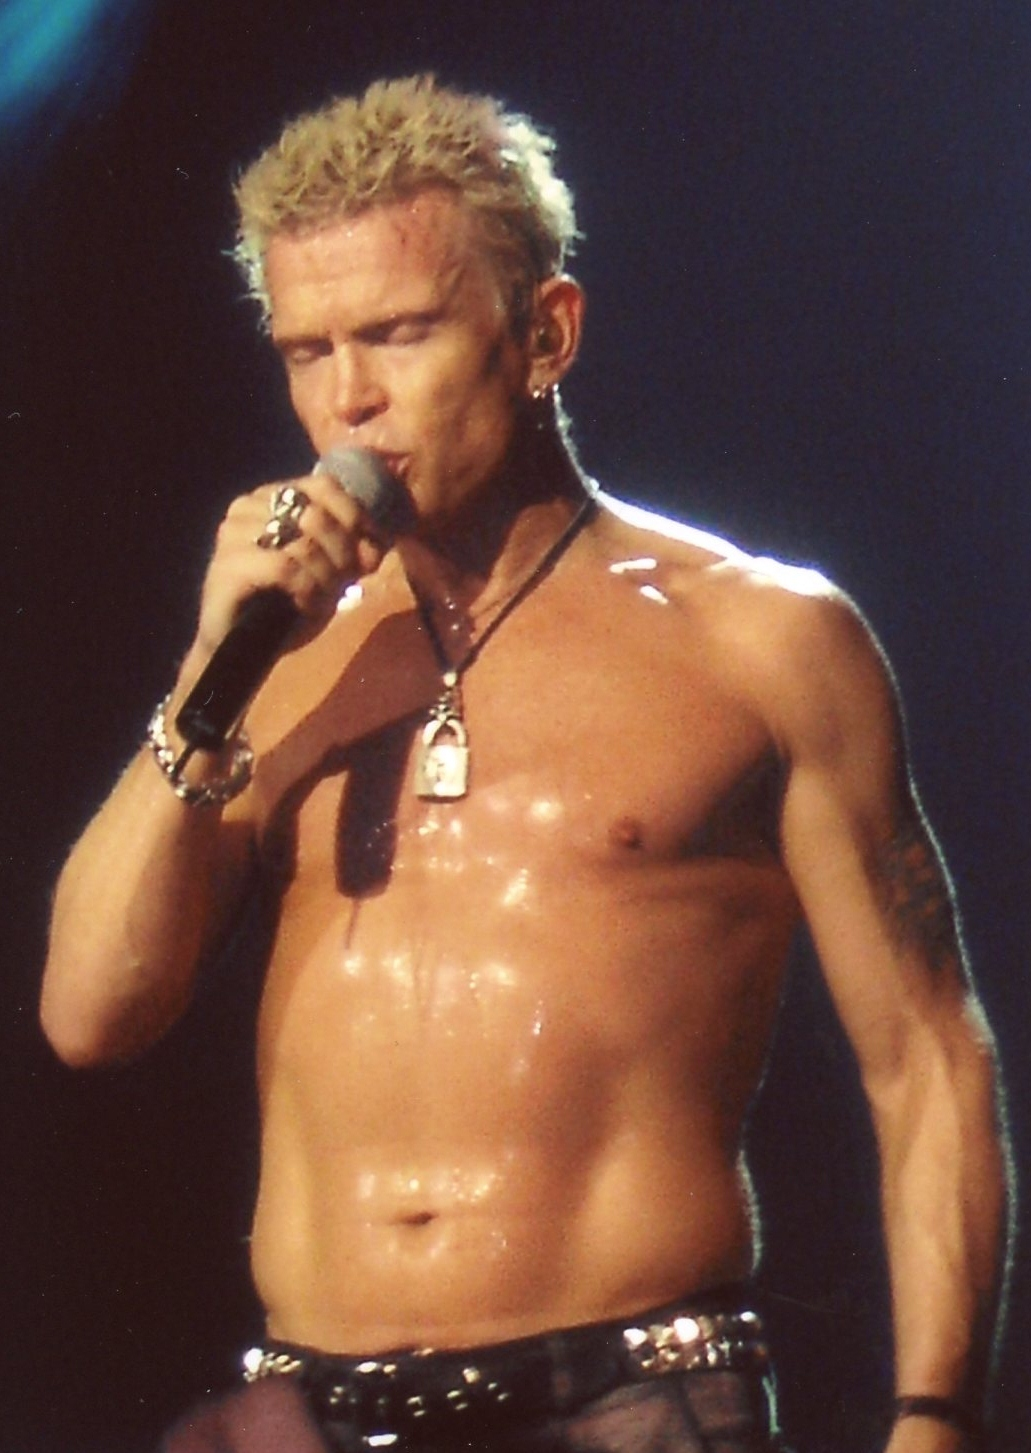 Billy_Idol_Brixton_Academy_London_11.11.2005_(2)